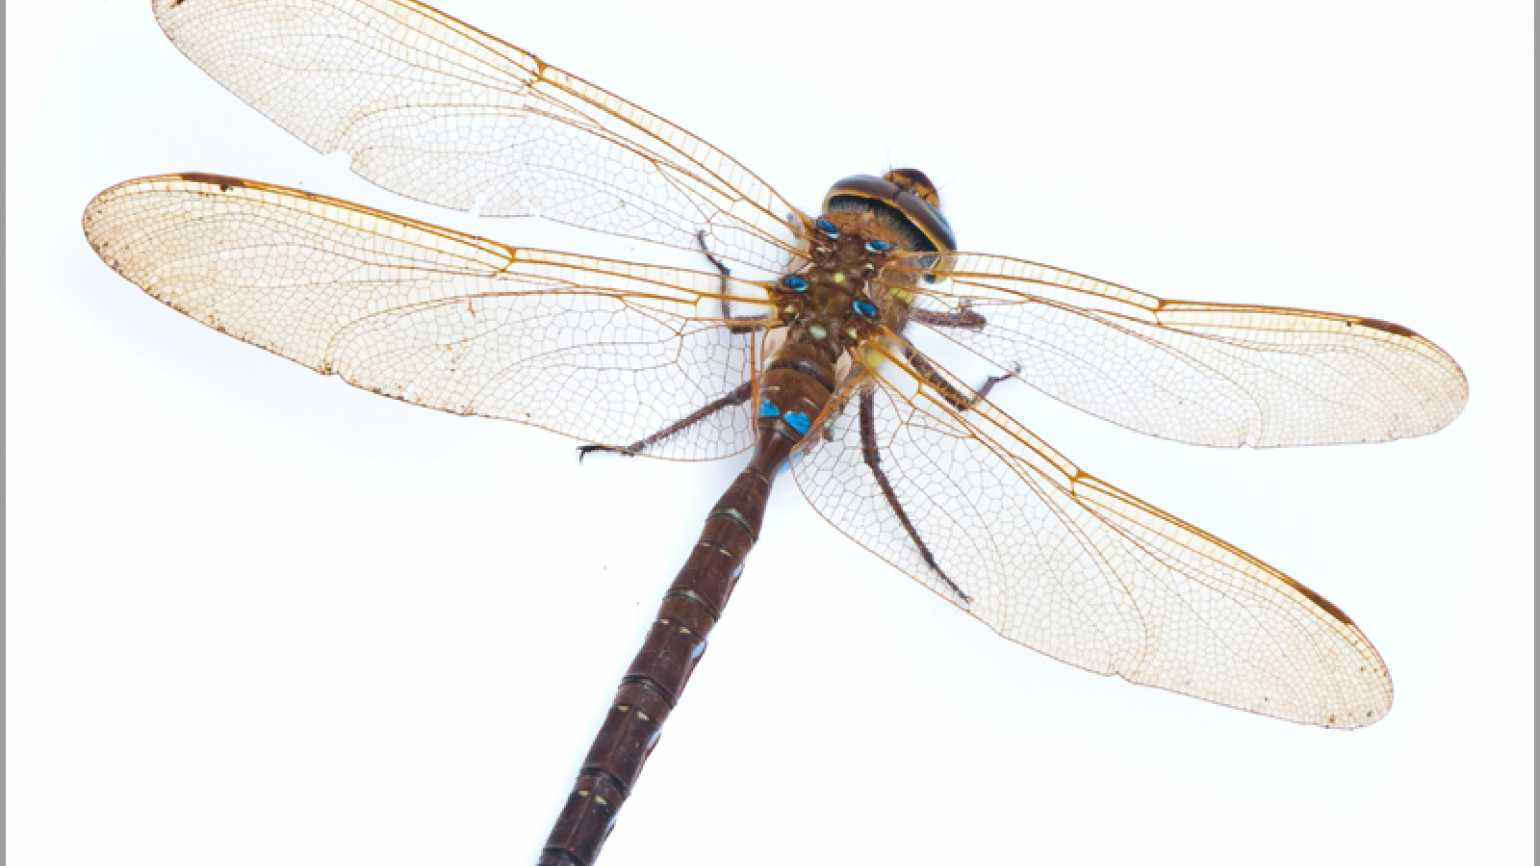 A closeup photo of a dragonfly